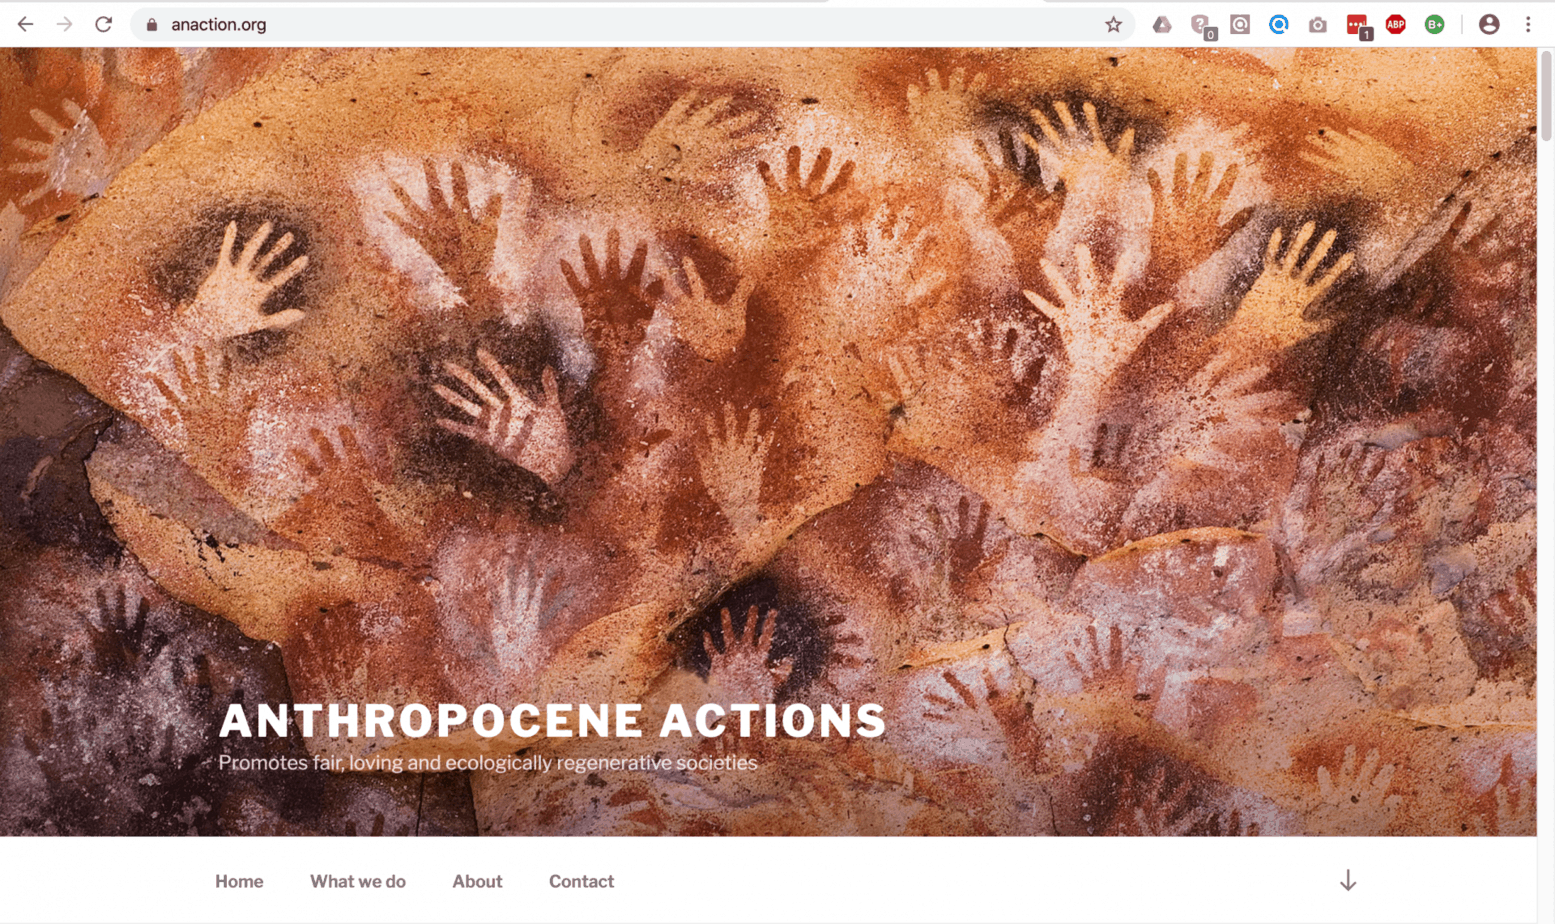 Anthropocene Actions